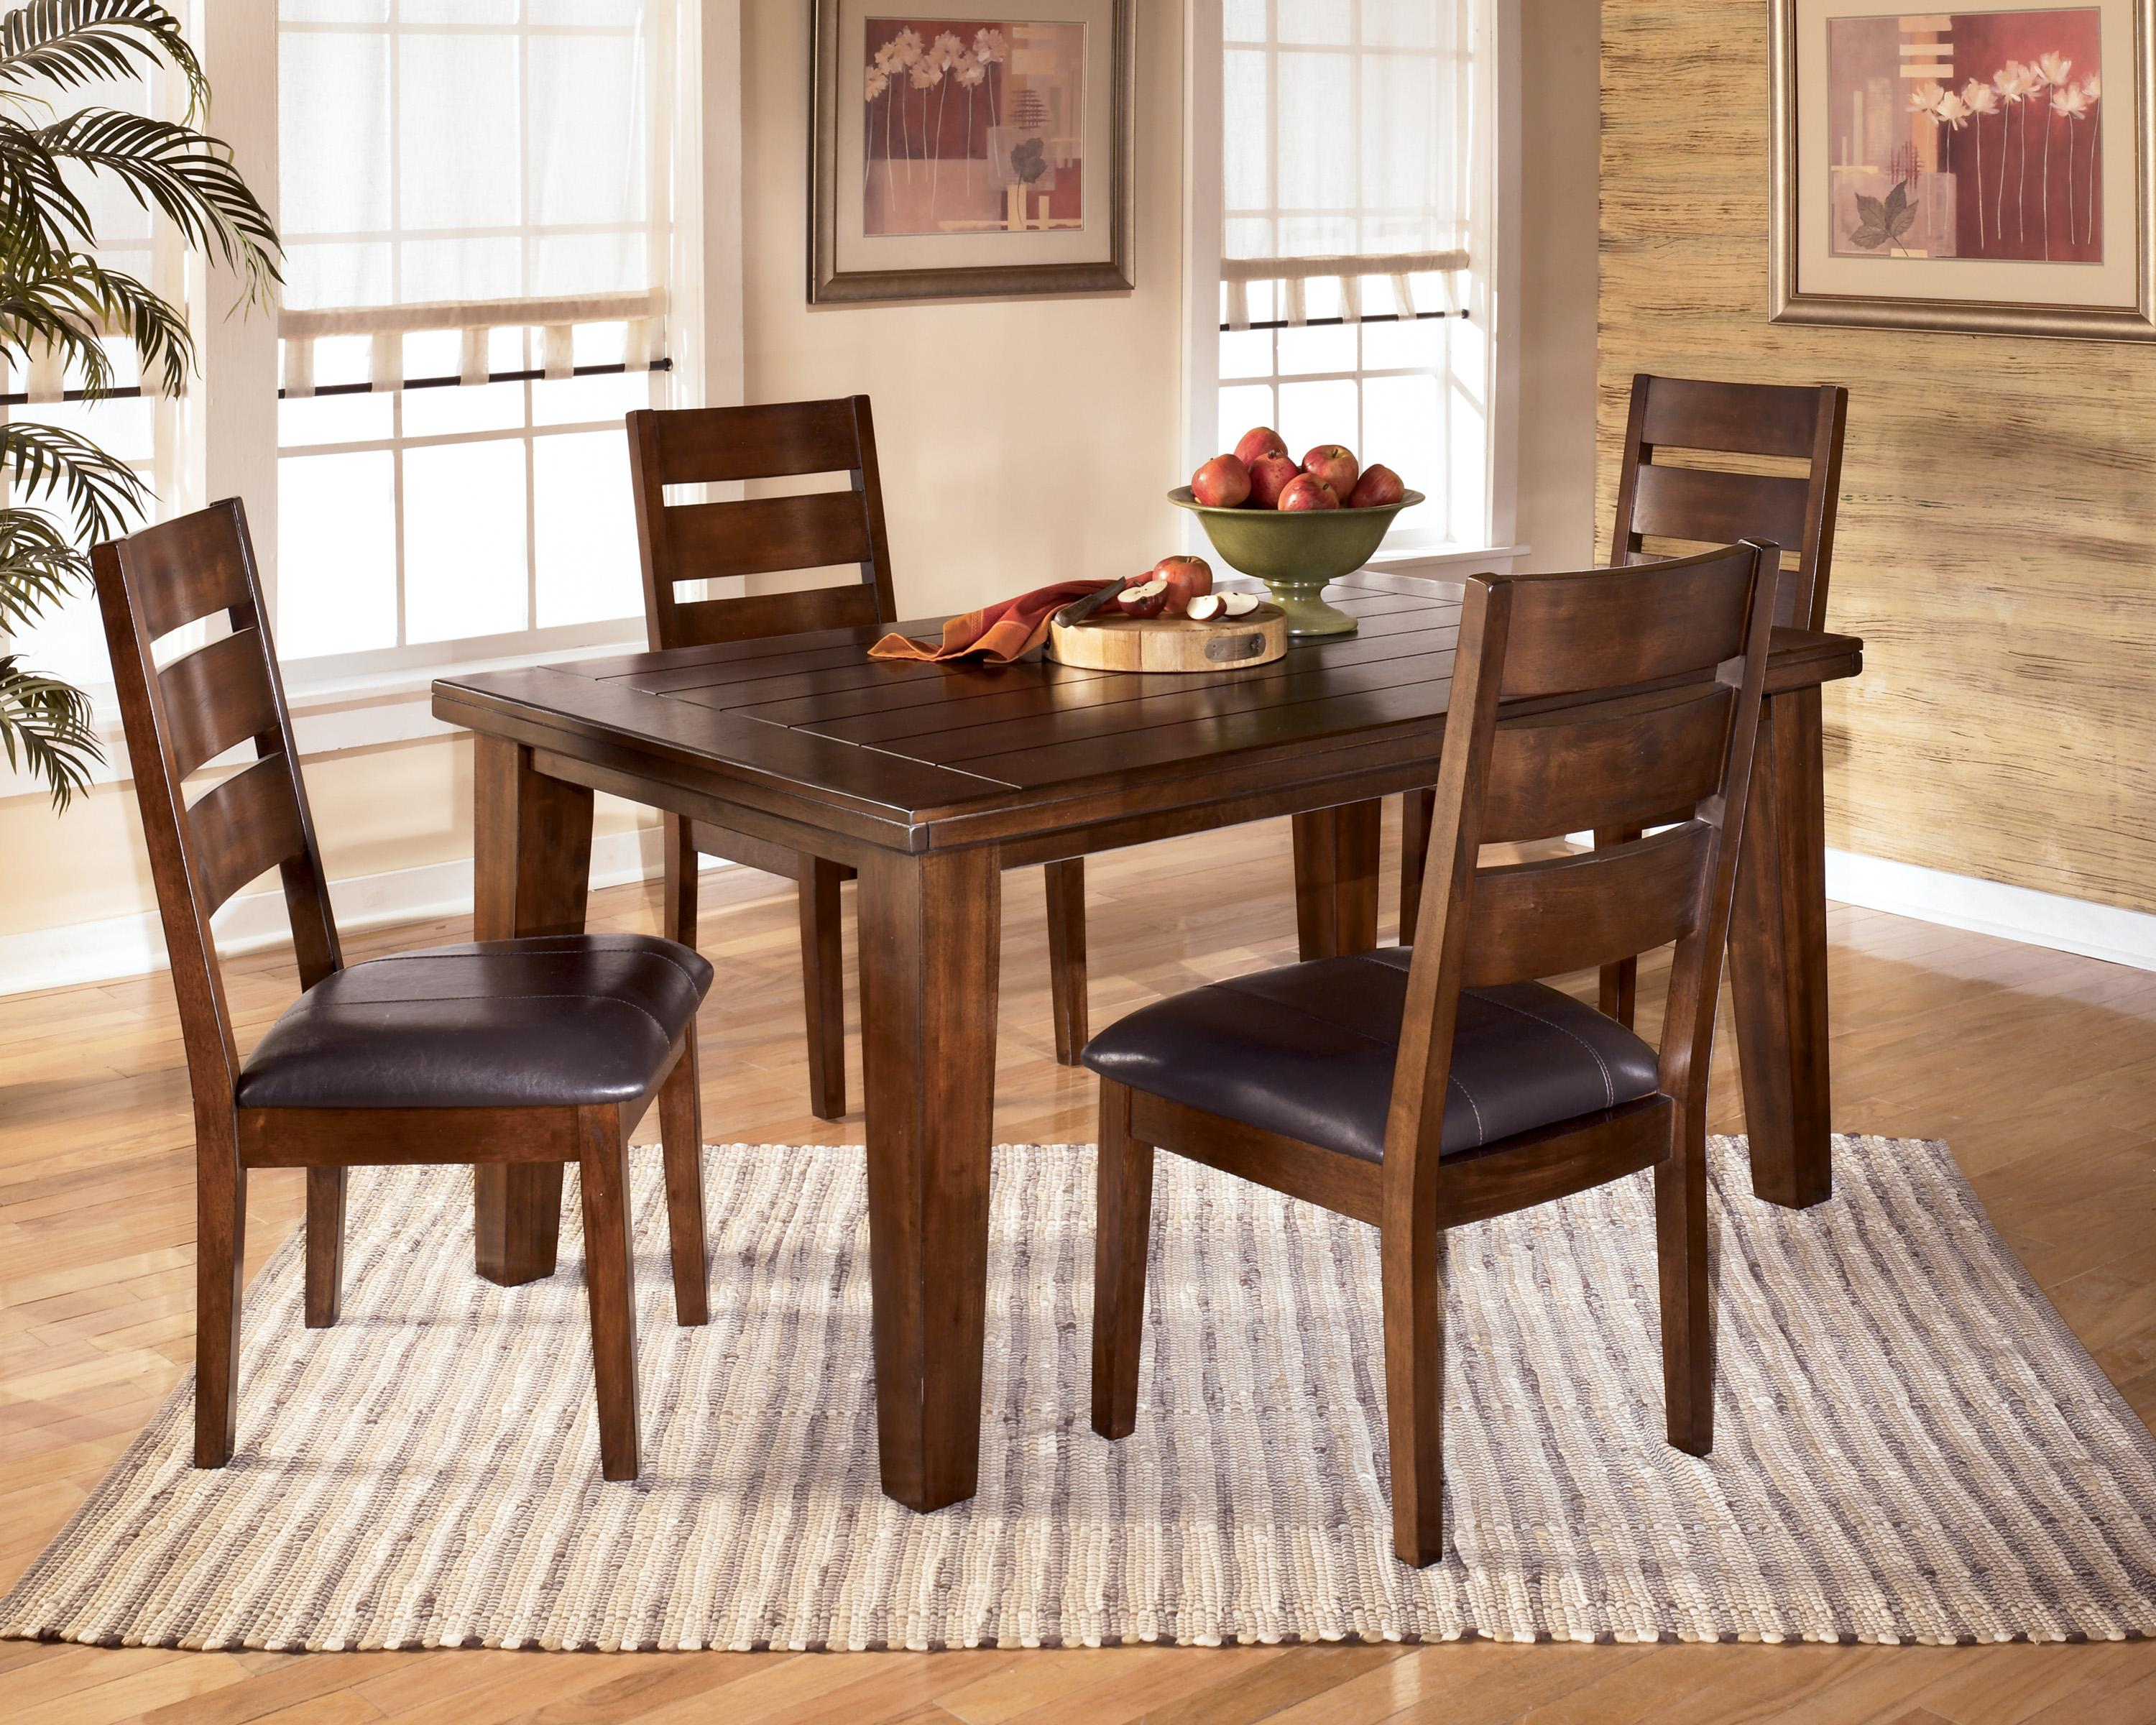 Ashley Furniture Kitchen Table And Chairs Signature Design By Ashley Furniture Larchmont Rectangular